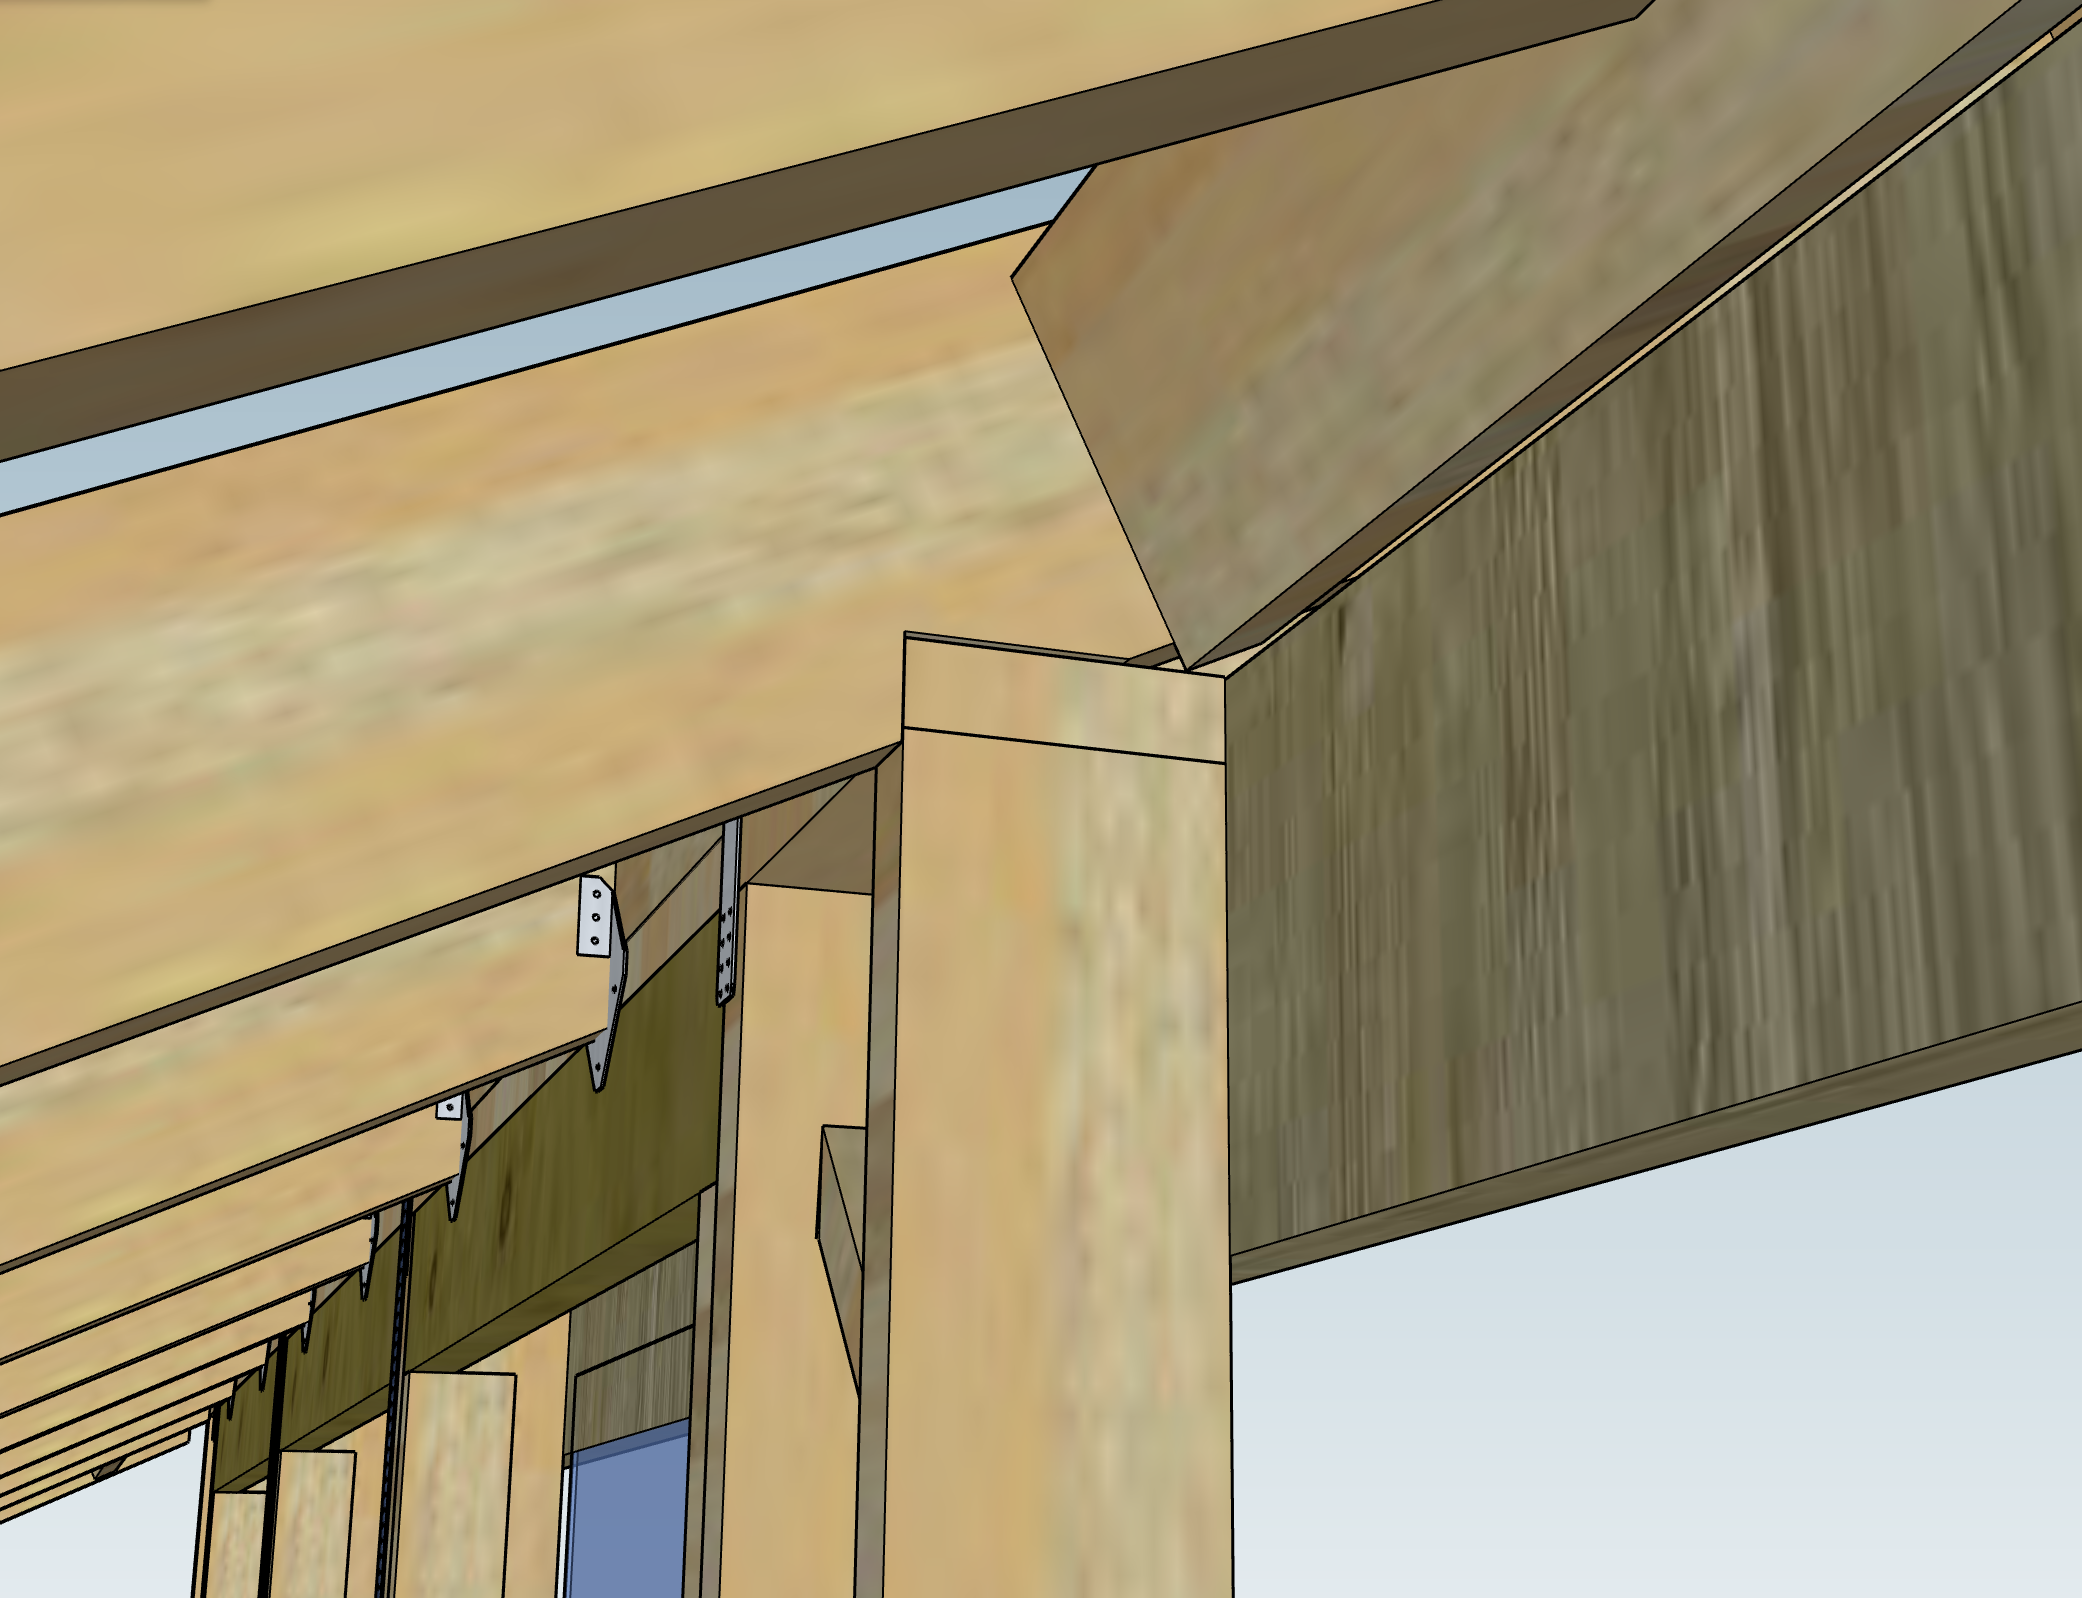 Shed / workshop framing design--is it too ambitious?-screen-shot-2020-04-26-12.57.15-pm.png